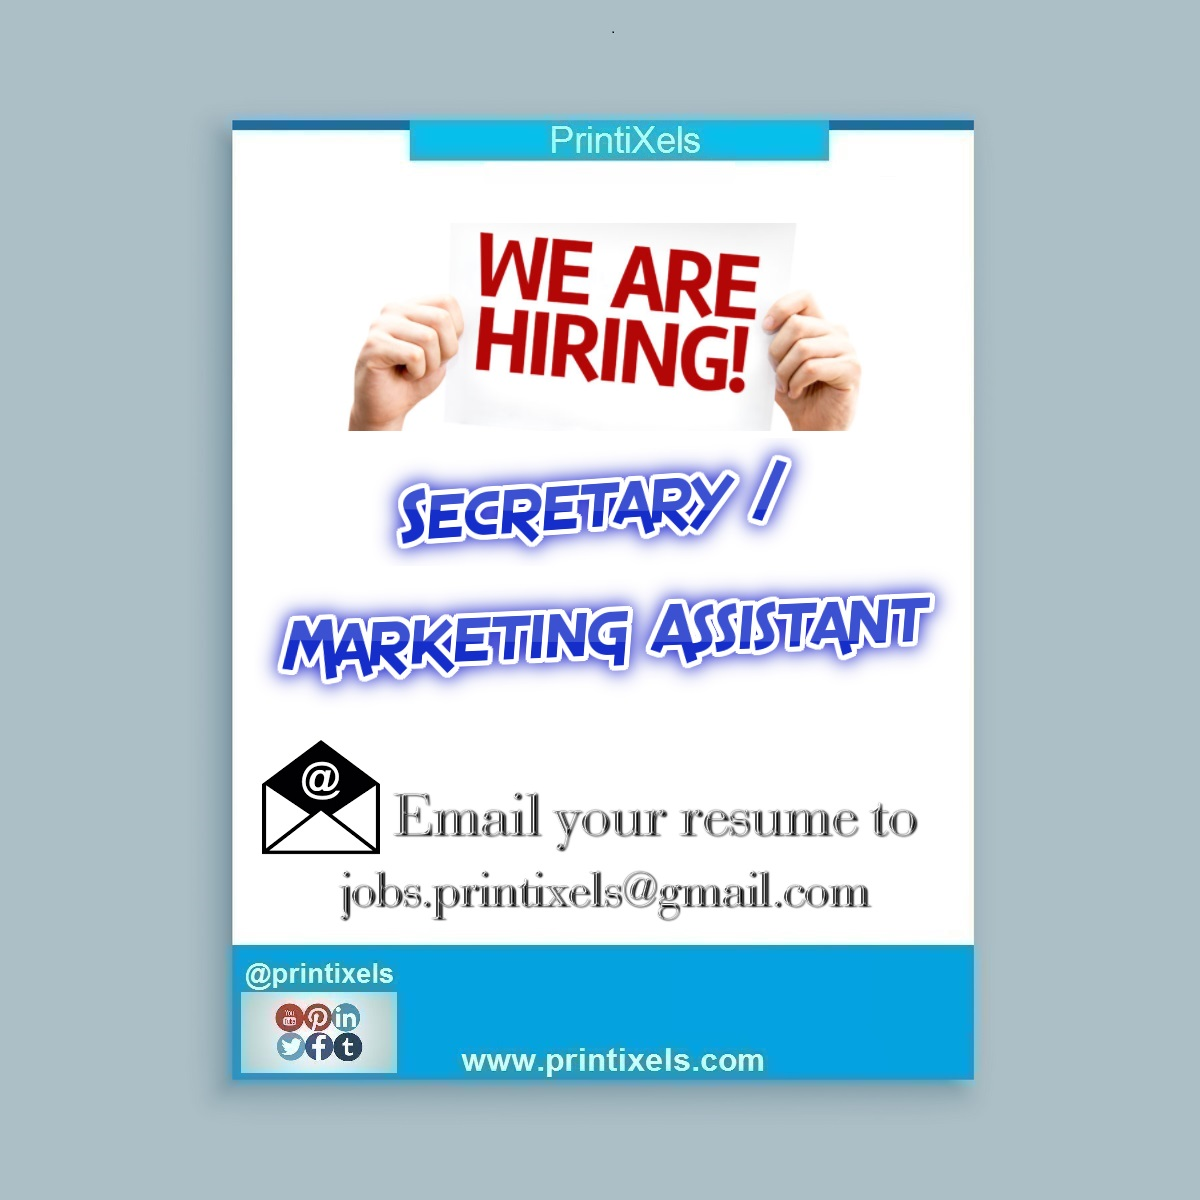 We Are Hiring: Secretary / Marketing Assistant